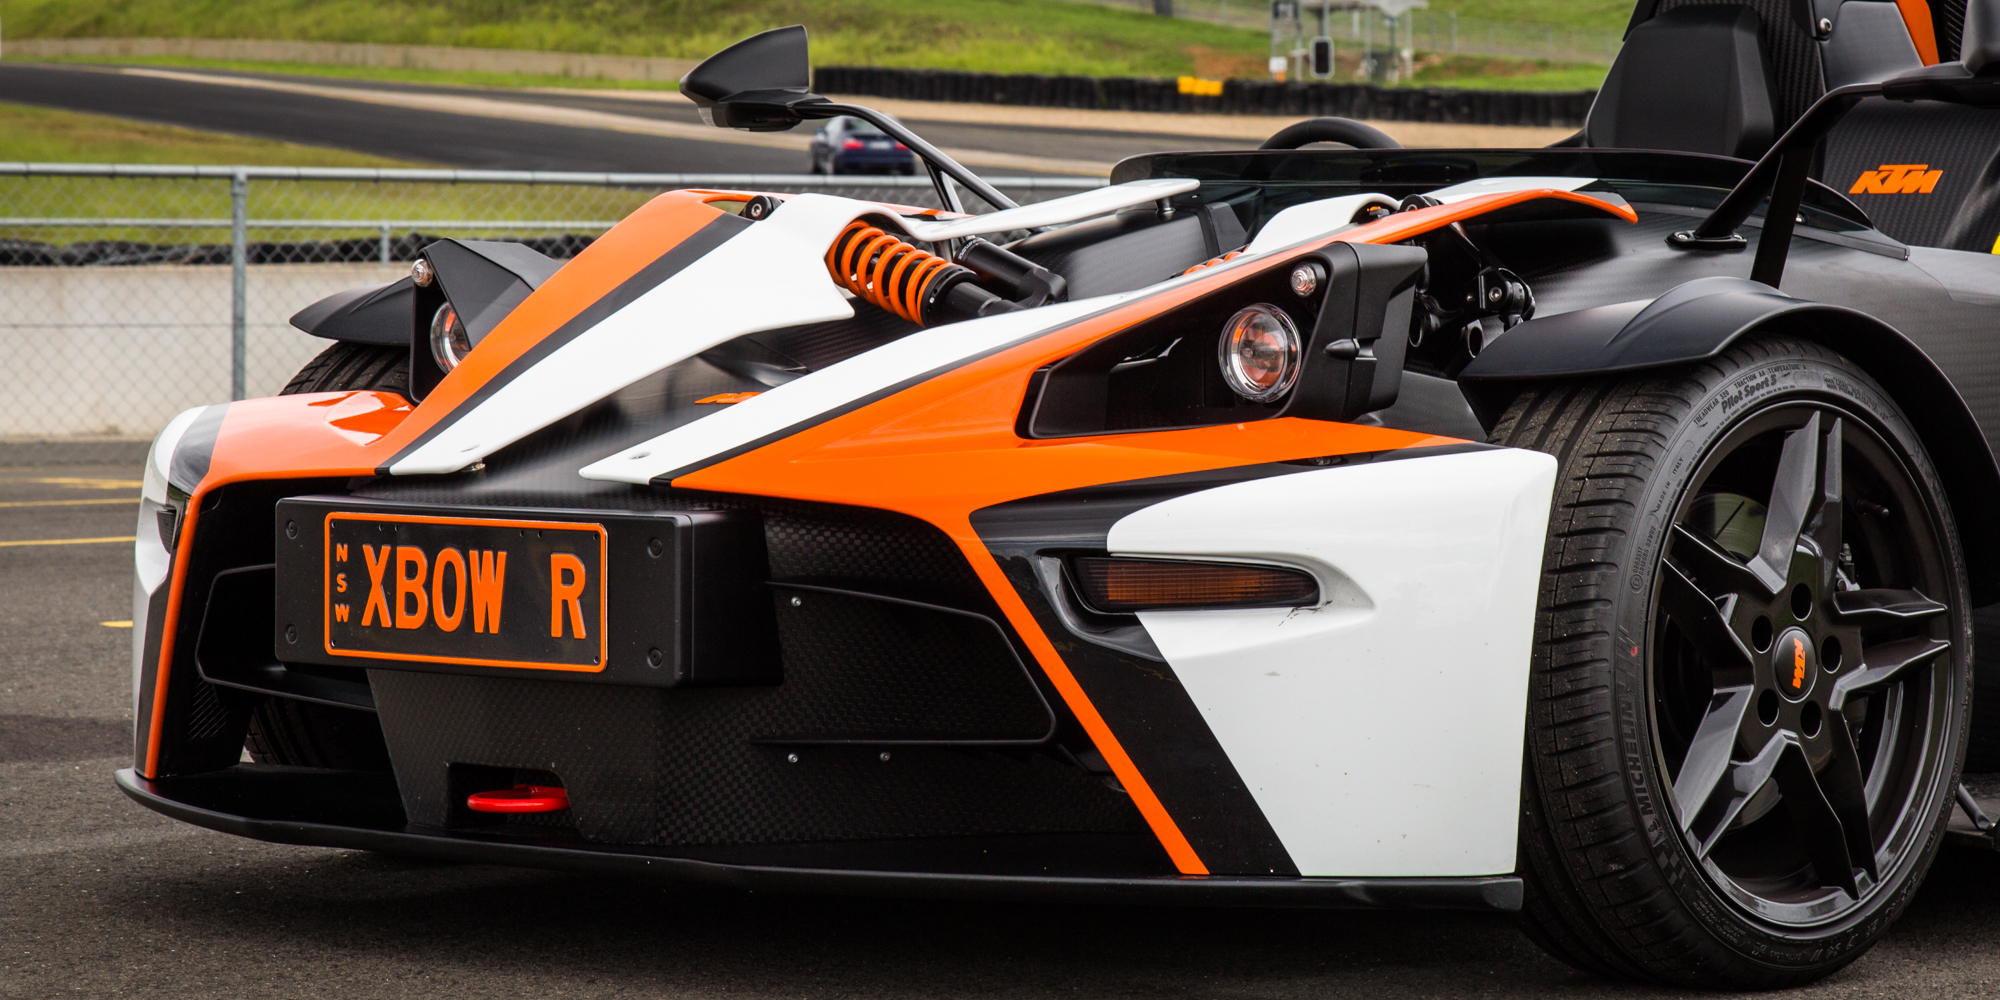 Ktm X-Bow Price >> 2017 KTM X-Bow review | CarAdvice